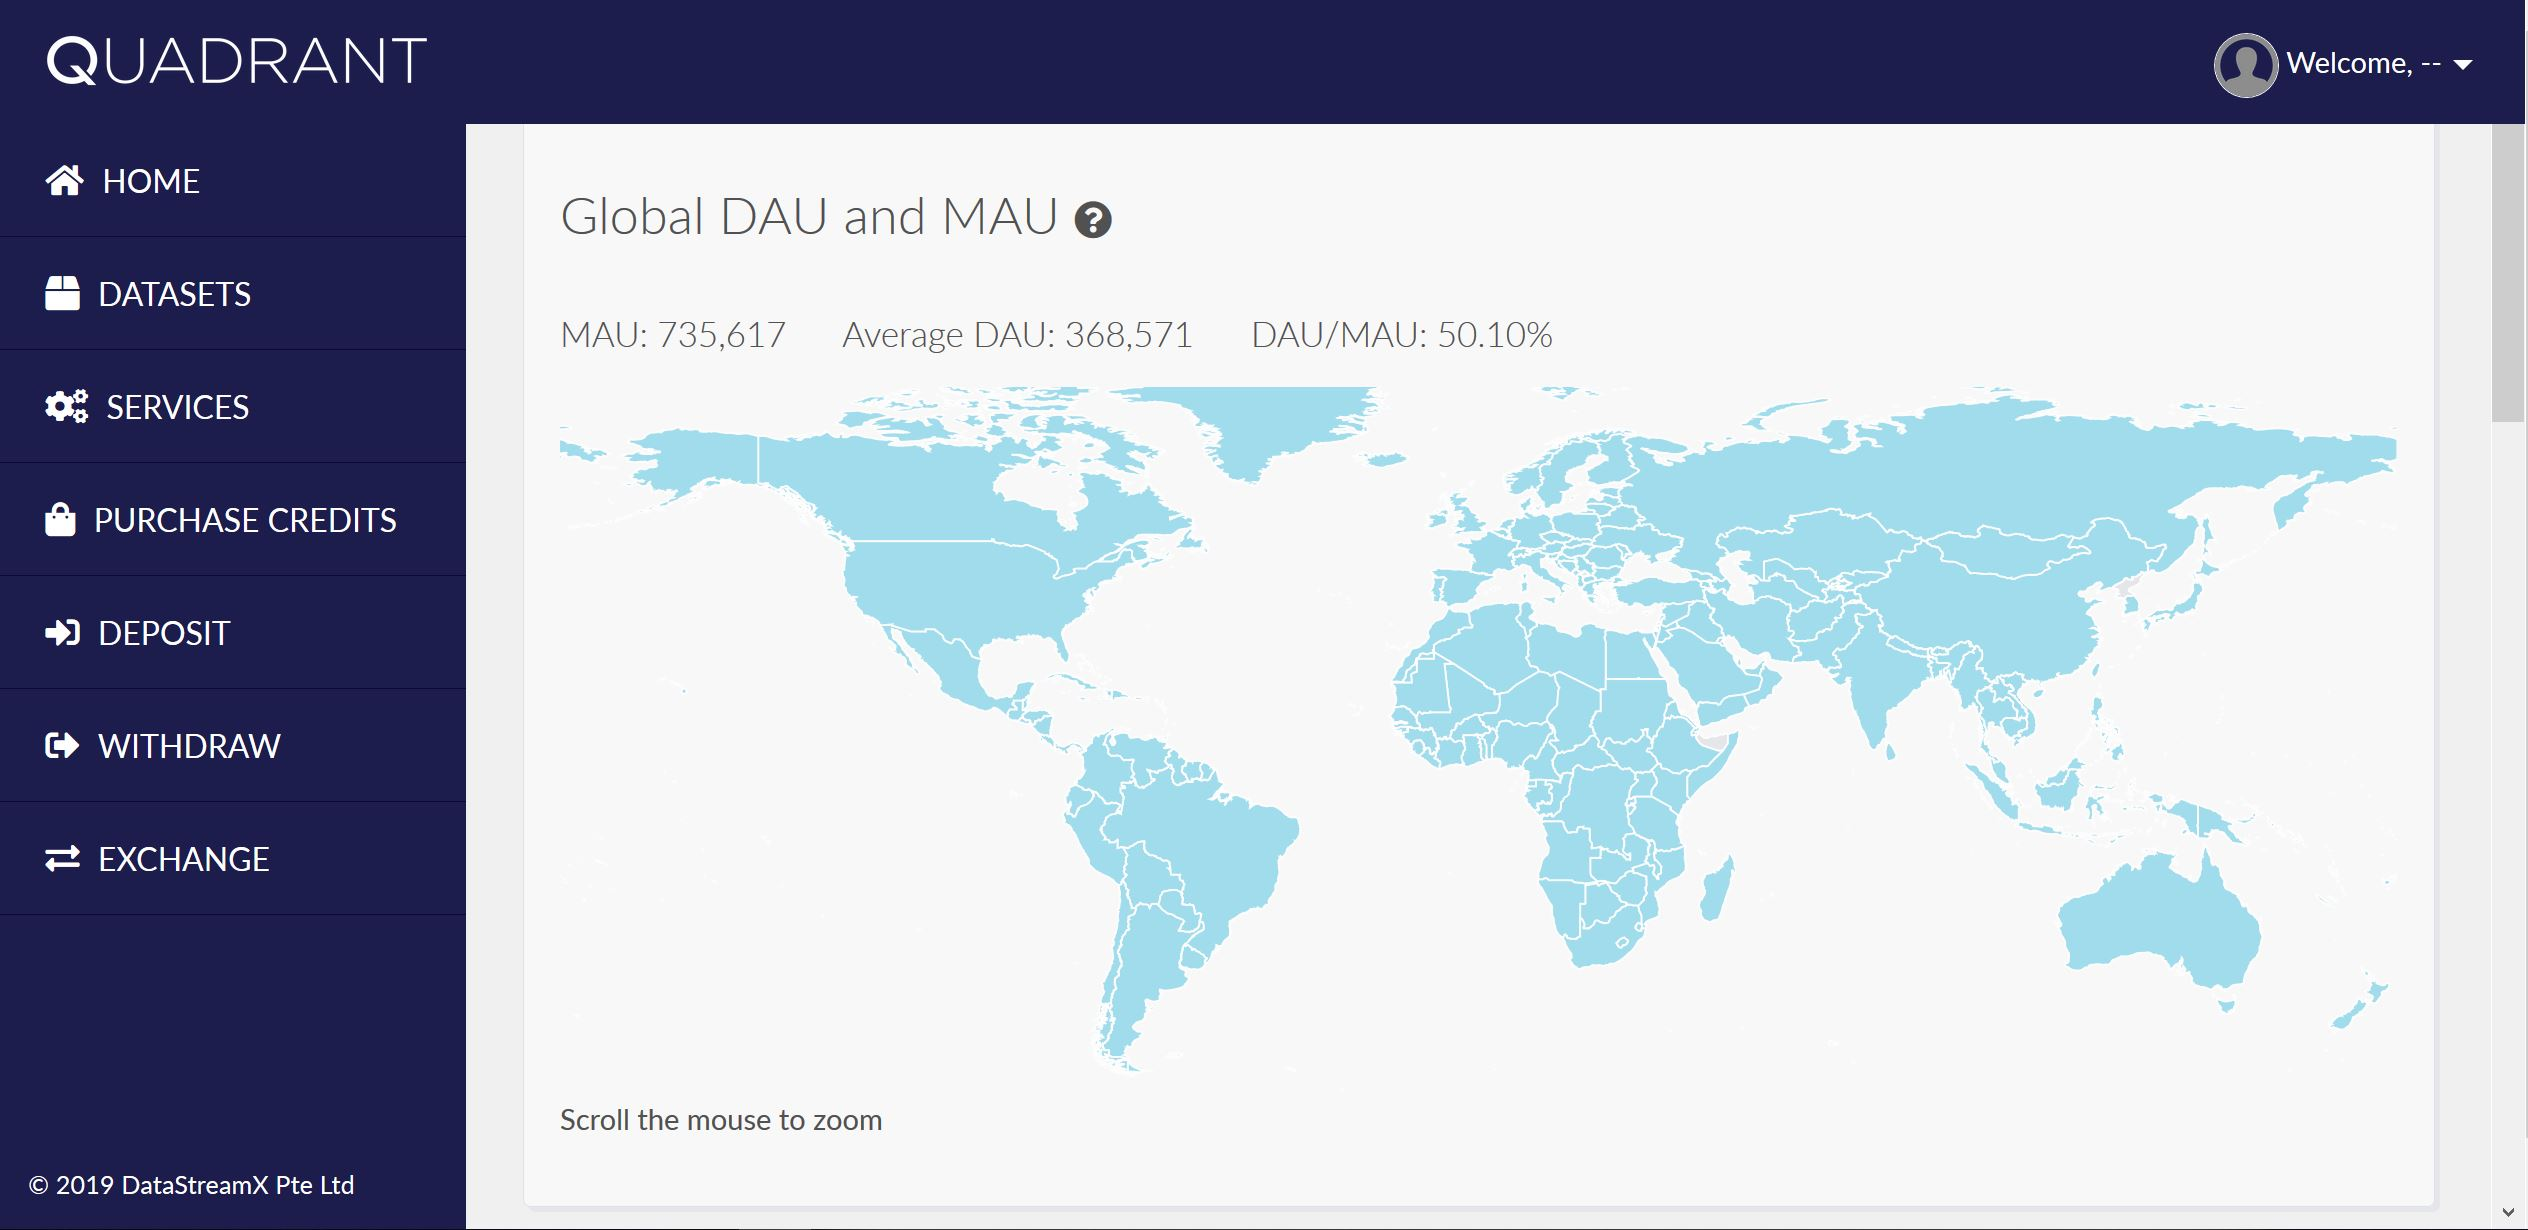 Data Quality Dashboard - Global MAU and DAU